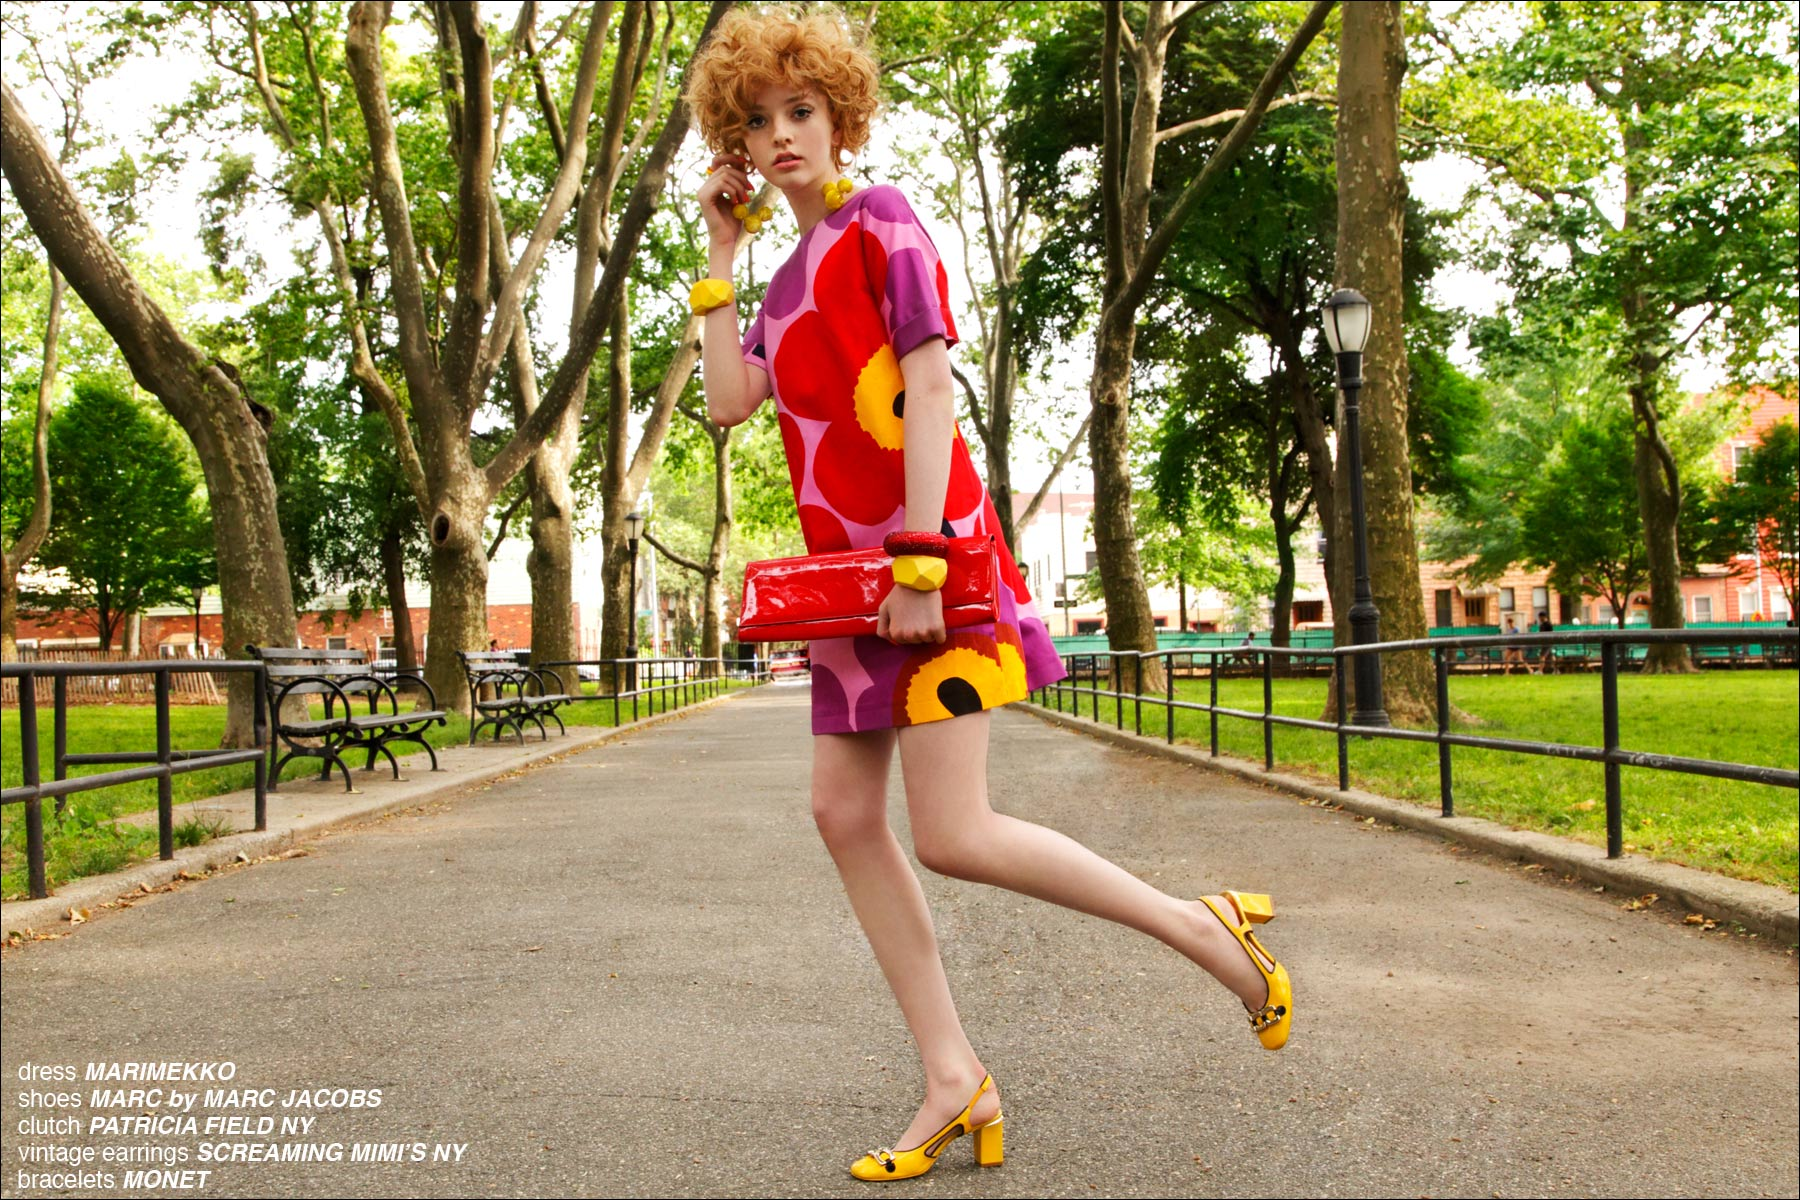 A Day in The Park, a Marimekko inspired women's editorial for Ponyboy Magazine in New York City, photographed by Alexander Thompson.